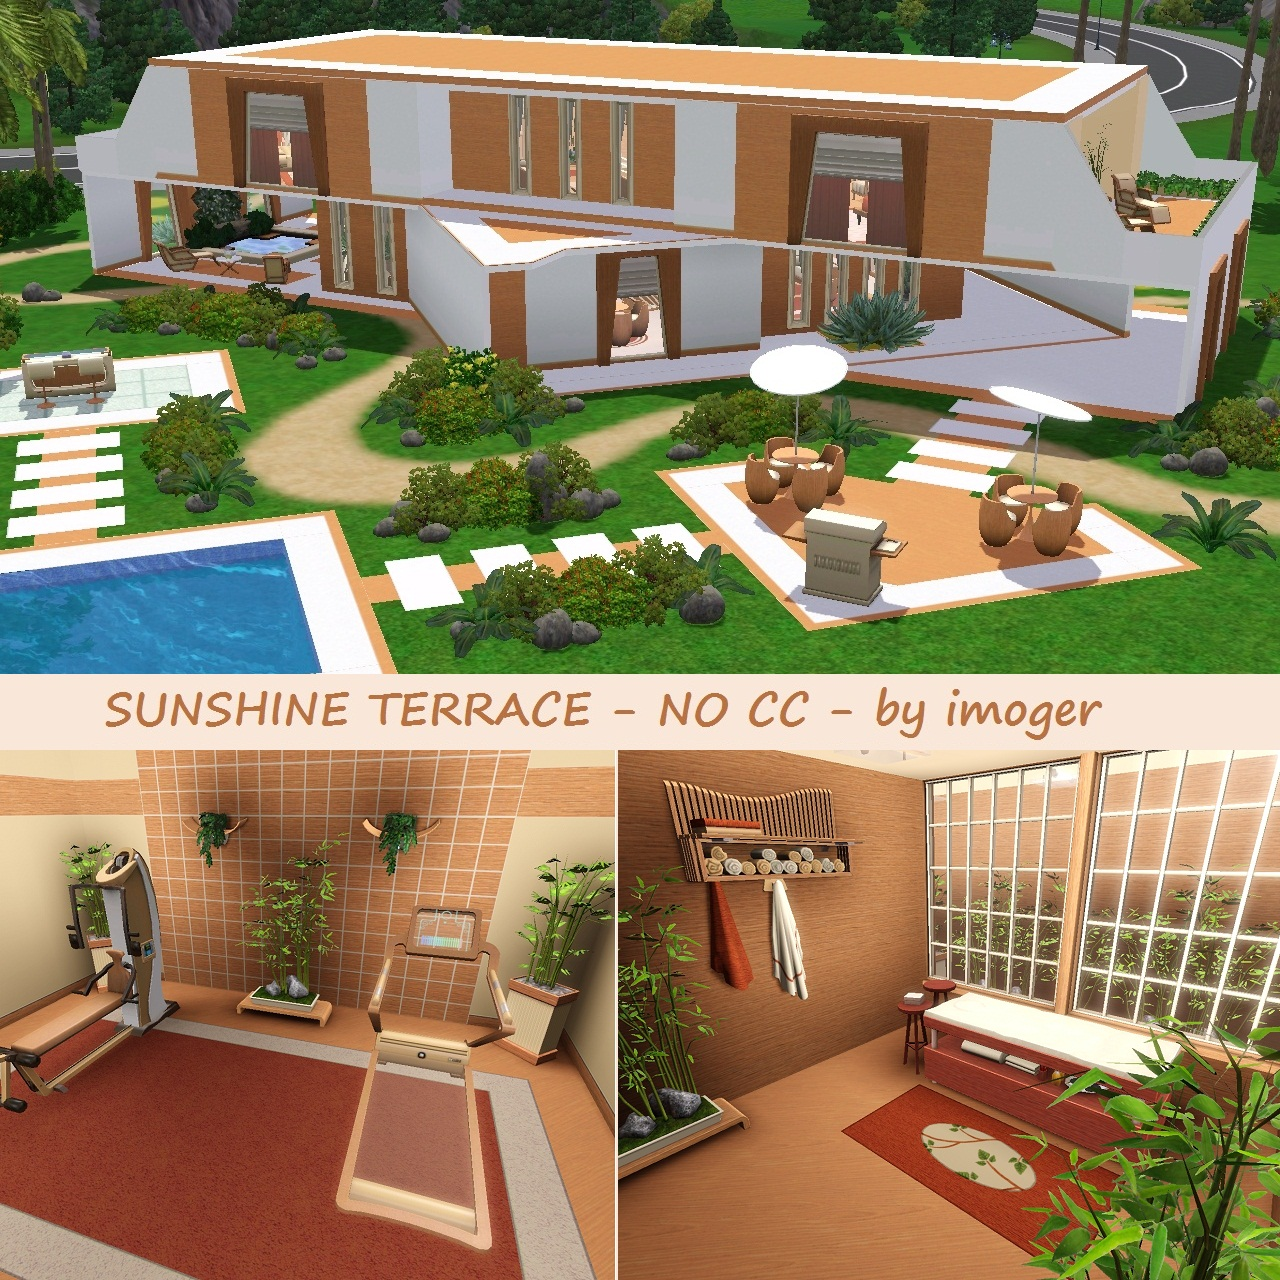 Imoger 39 s sims creations okt ber 2012 for 11319 sunshine terrace